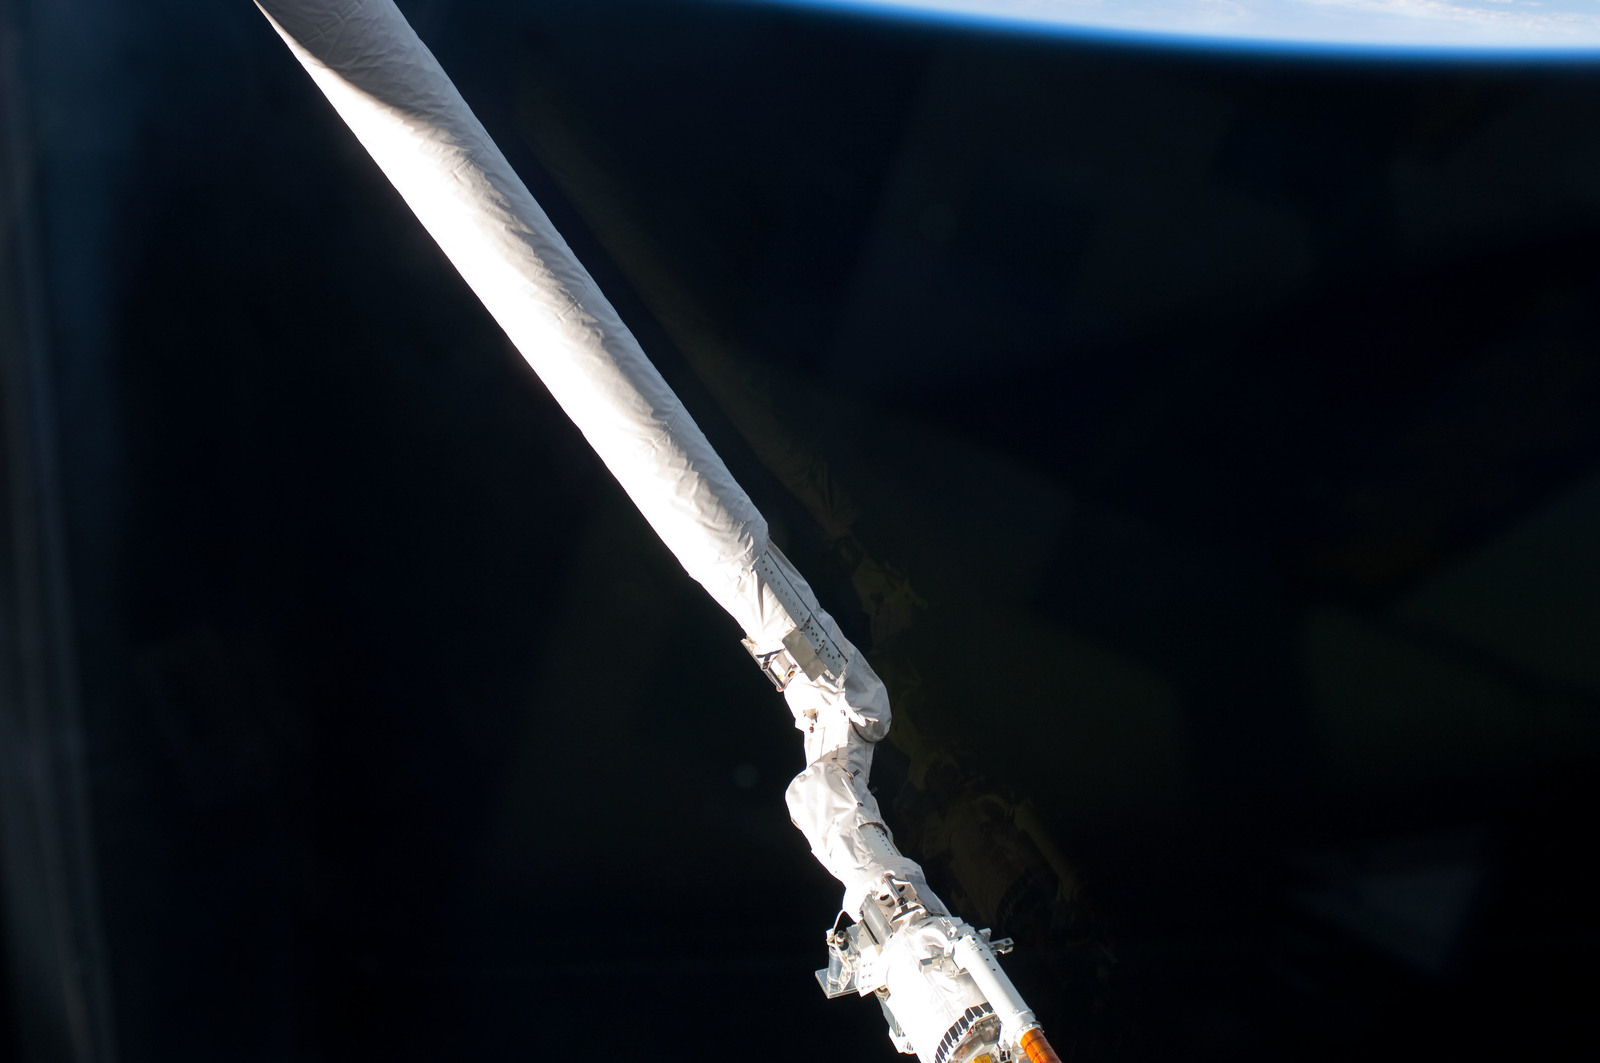 S125E007504 - STS-125 - View of the SRMS/Canadarm